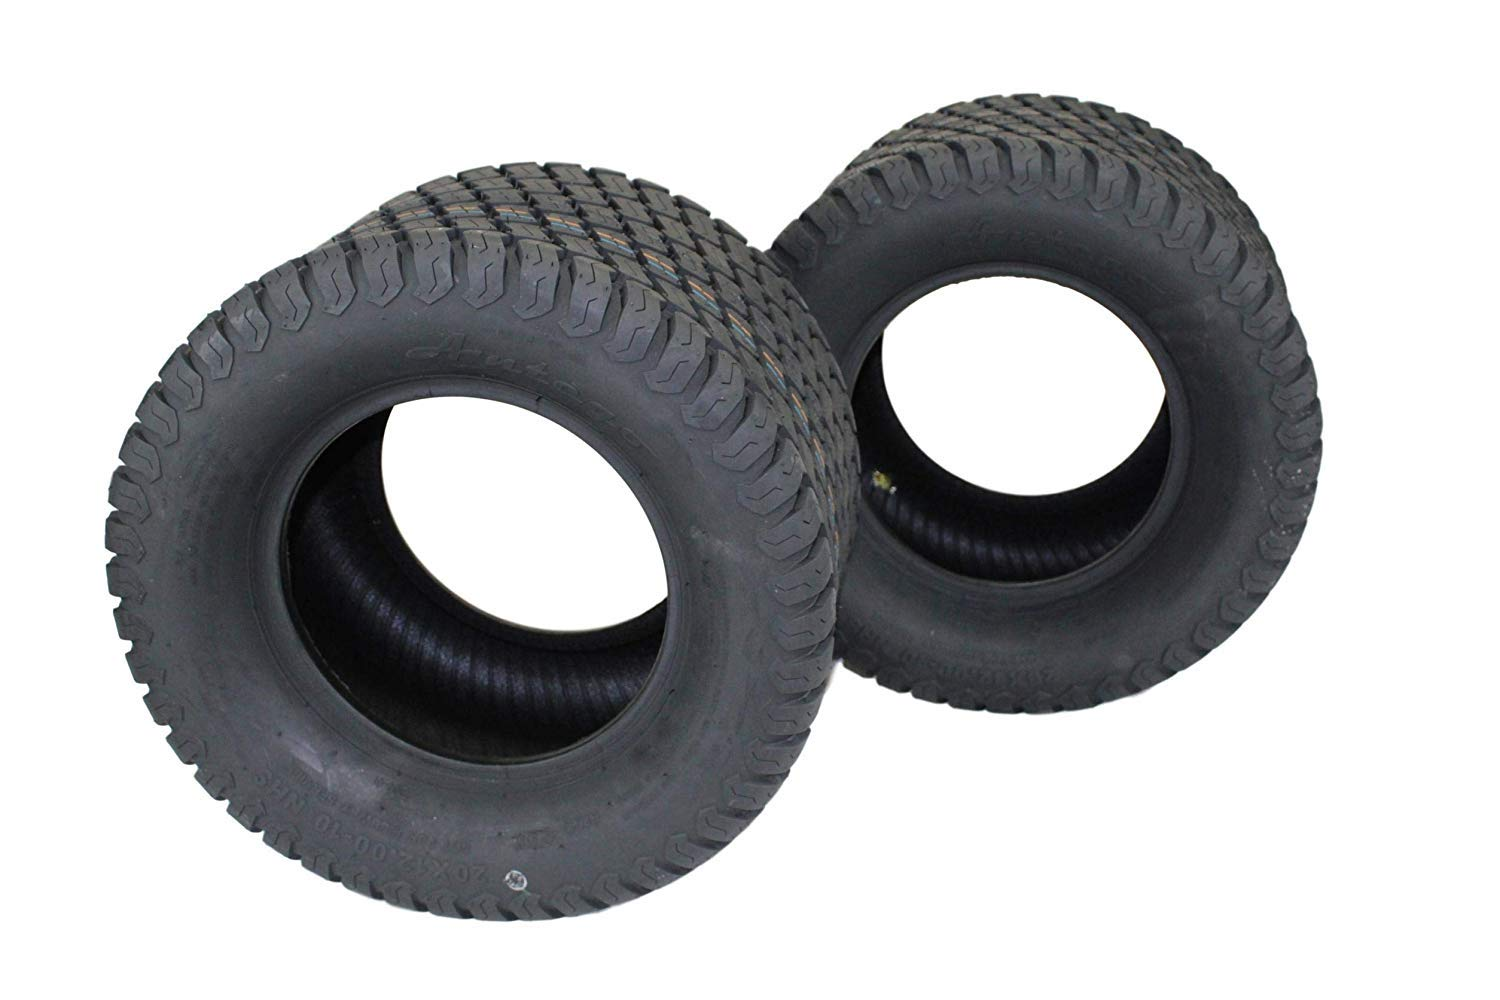 "(Set of 2) 20x12.00-10 ATW-003 Tires (Replacement tire for Hustler Raptor 54"", 60"" SD and SDX and Others) Lawn Mower/Zero Turn tire"